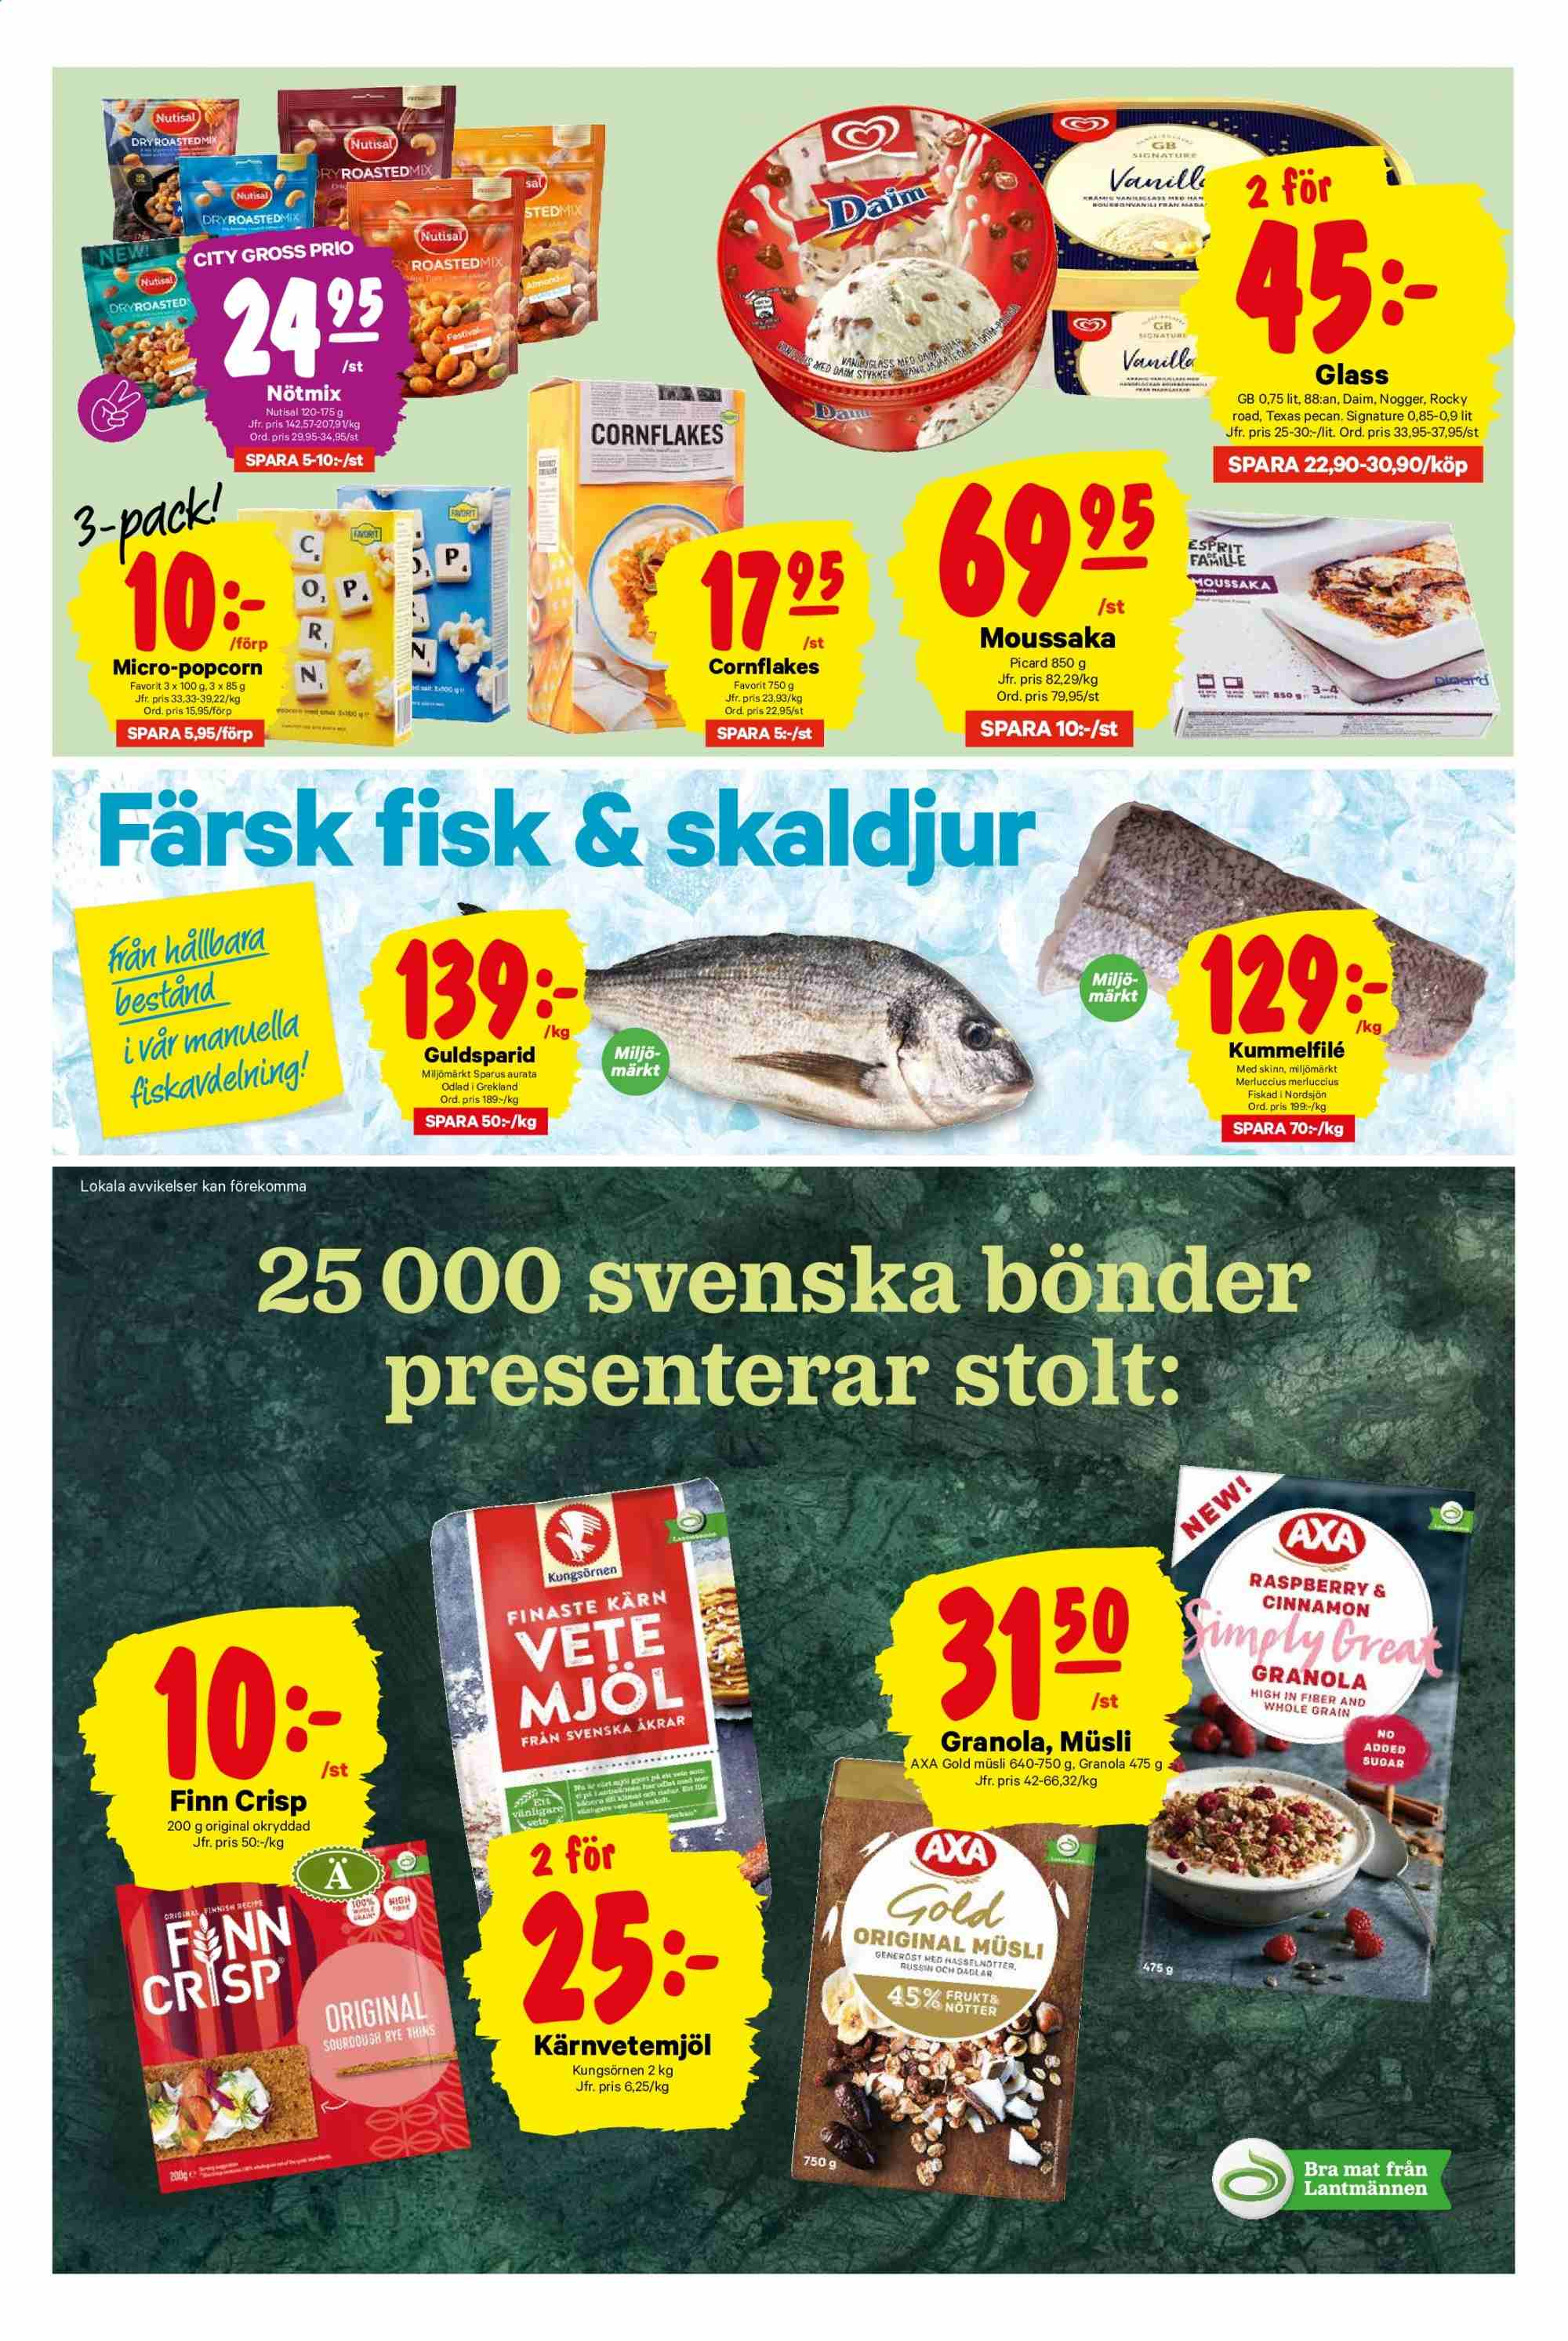 City Gross reklamblad - 24/6 2019 - 30/6 2019. Sida 9.